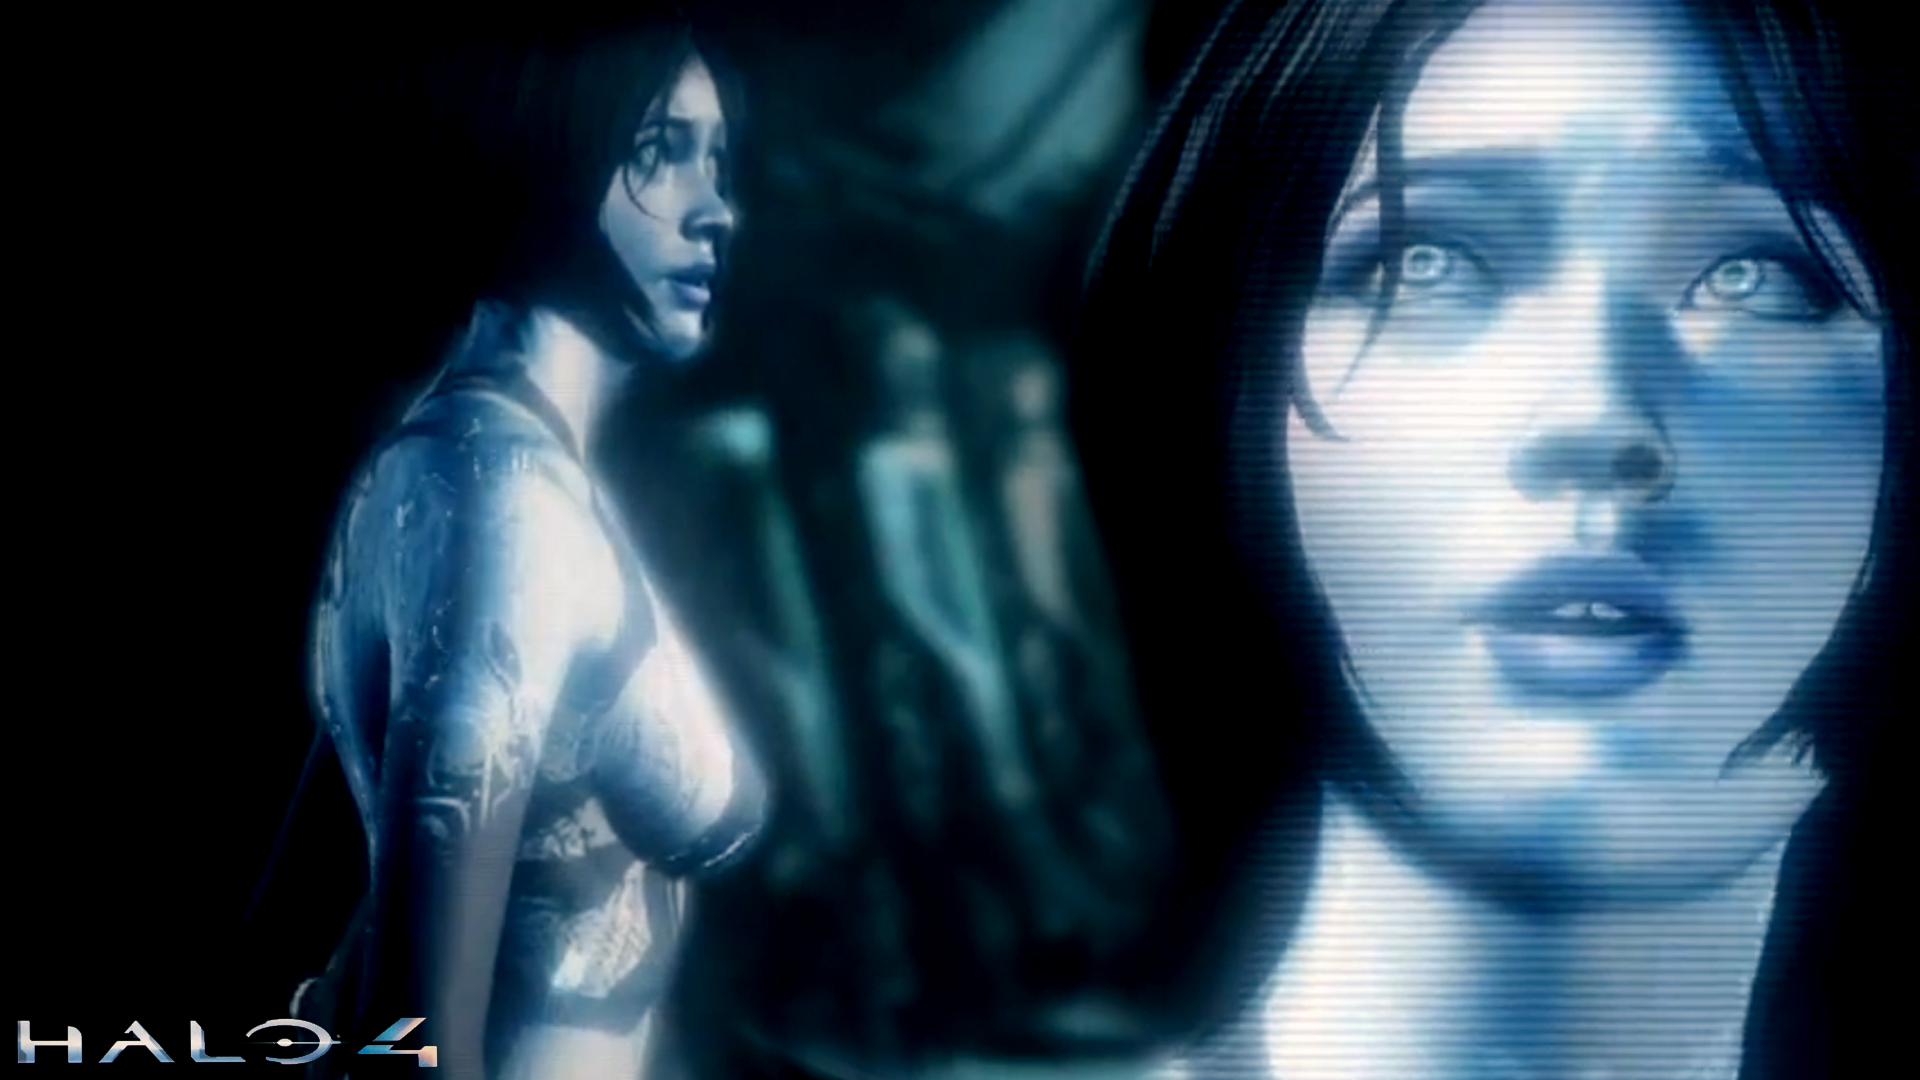 cortana wallpaper2 - photo #15